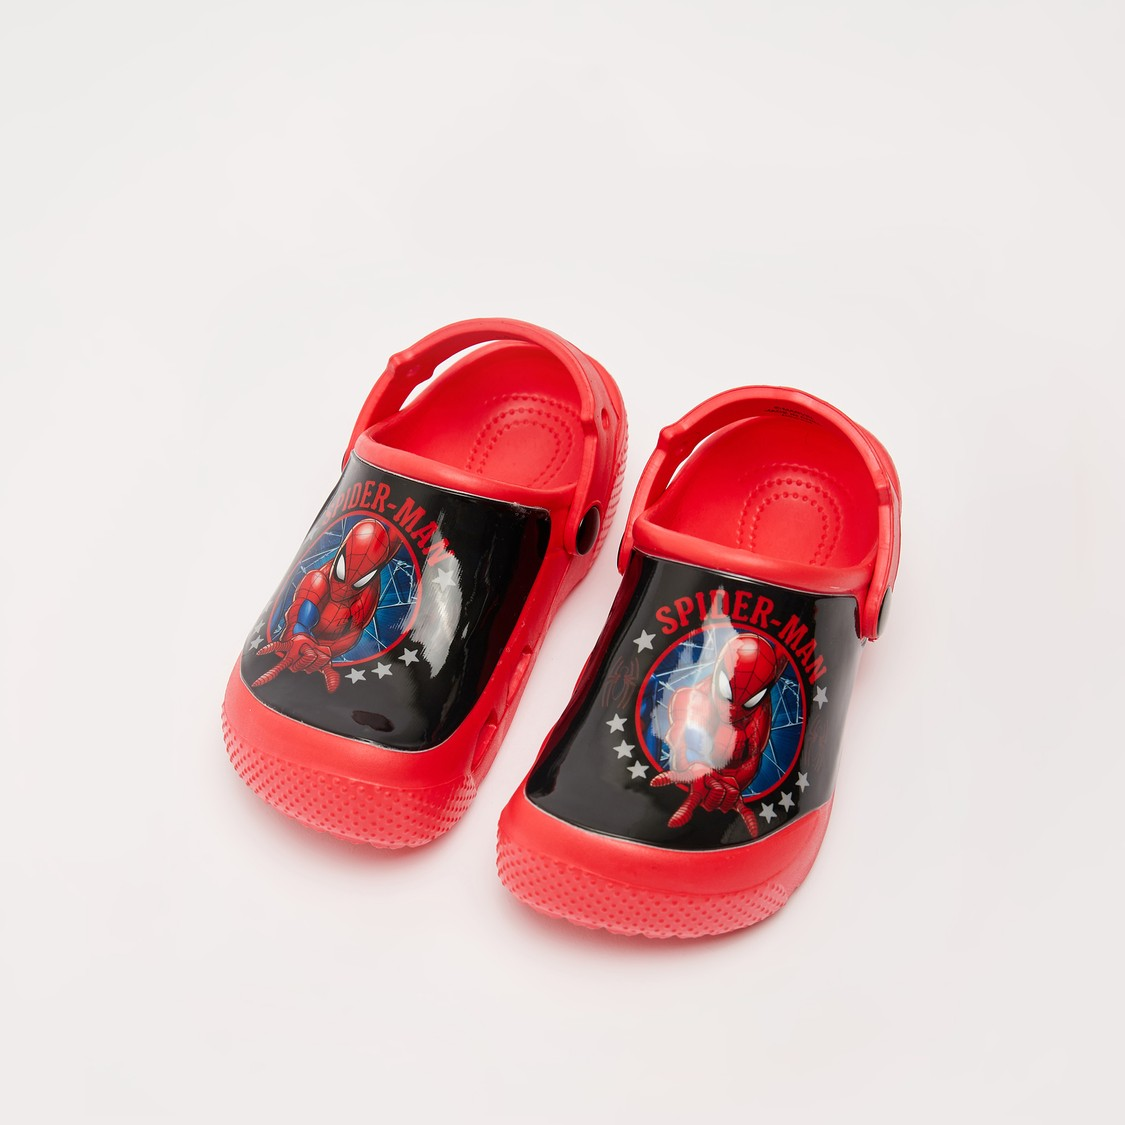 Spider-Man Print Clogs with Back Strap